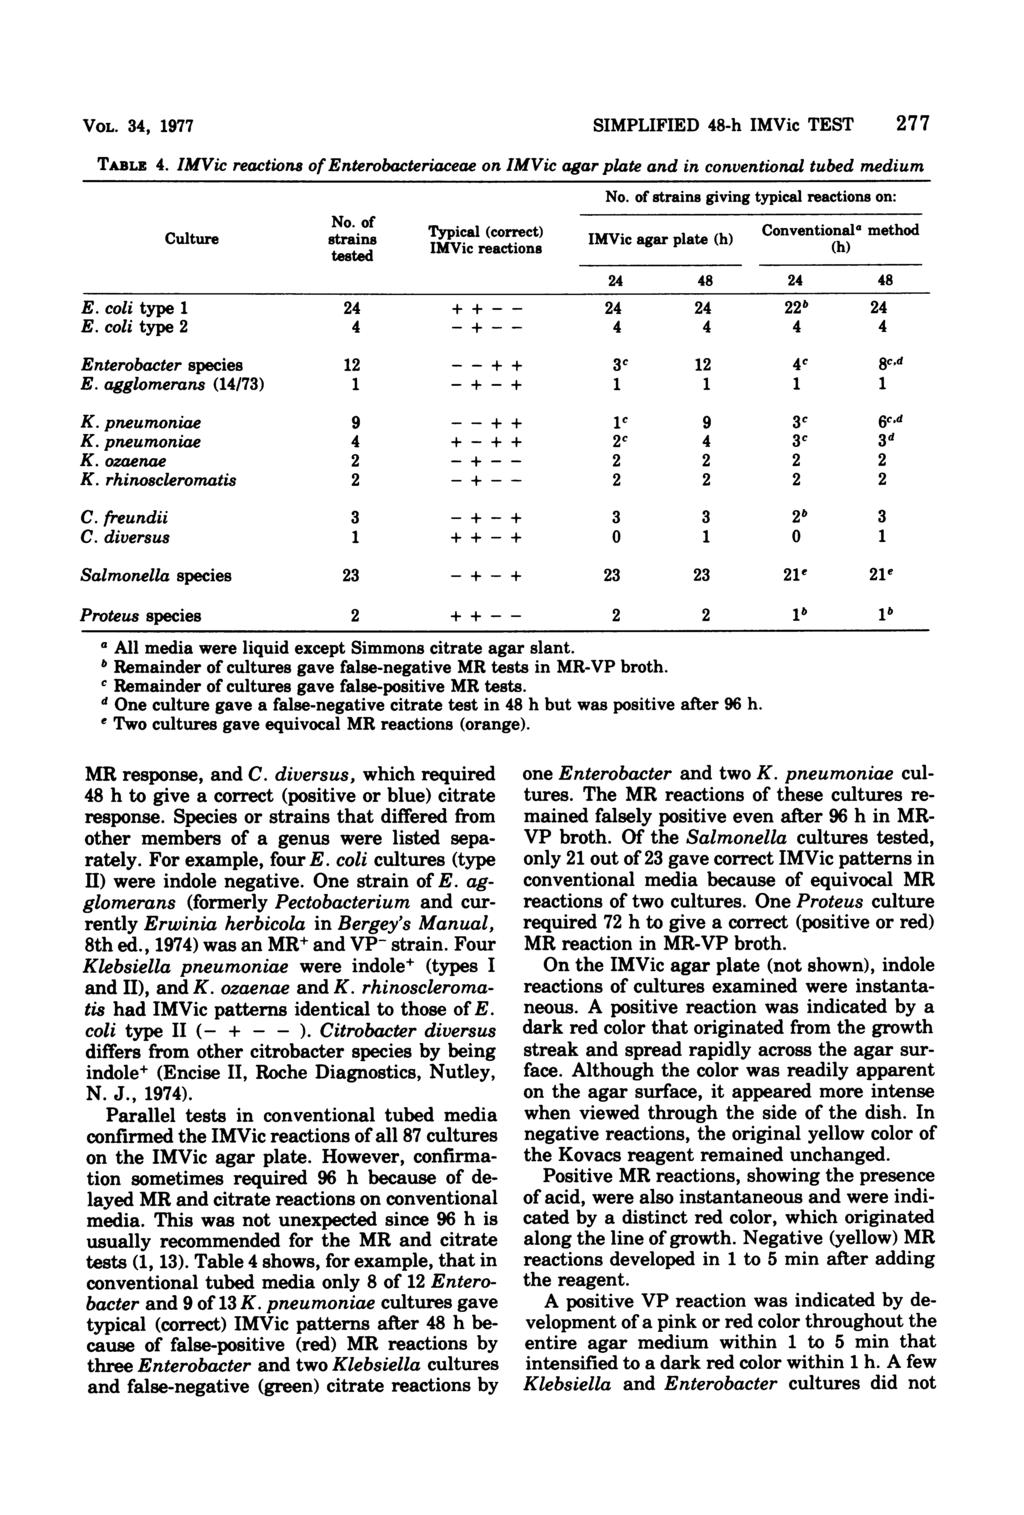 VOL. 34, 1977 SIMPLIFIED 48-h IMVic TEST 277 TABLz 4. IMVic reactions of Enterobacteriaceae on IMVic agar plate and in conventional tubed medium No.